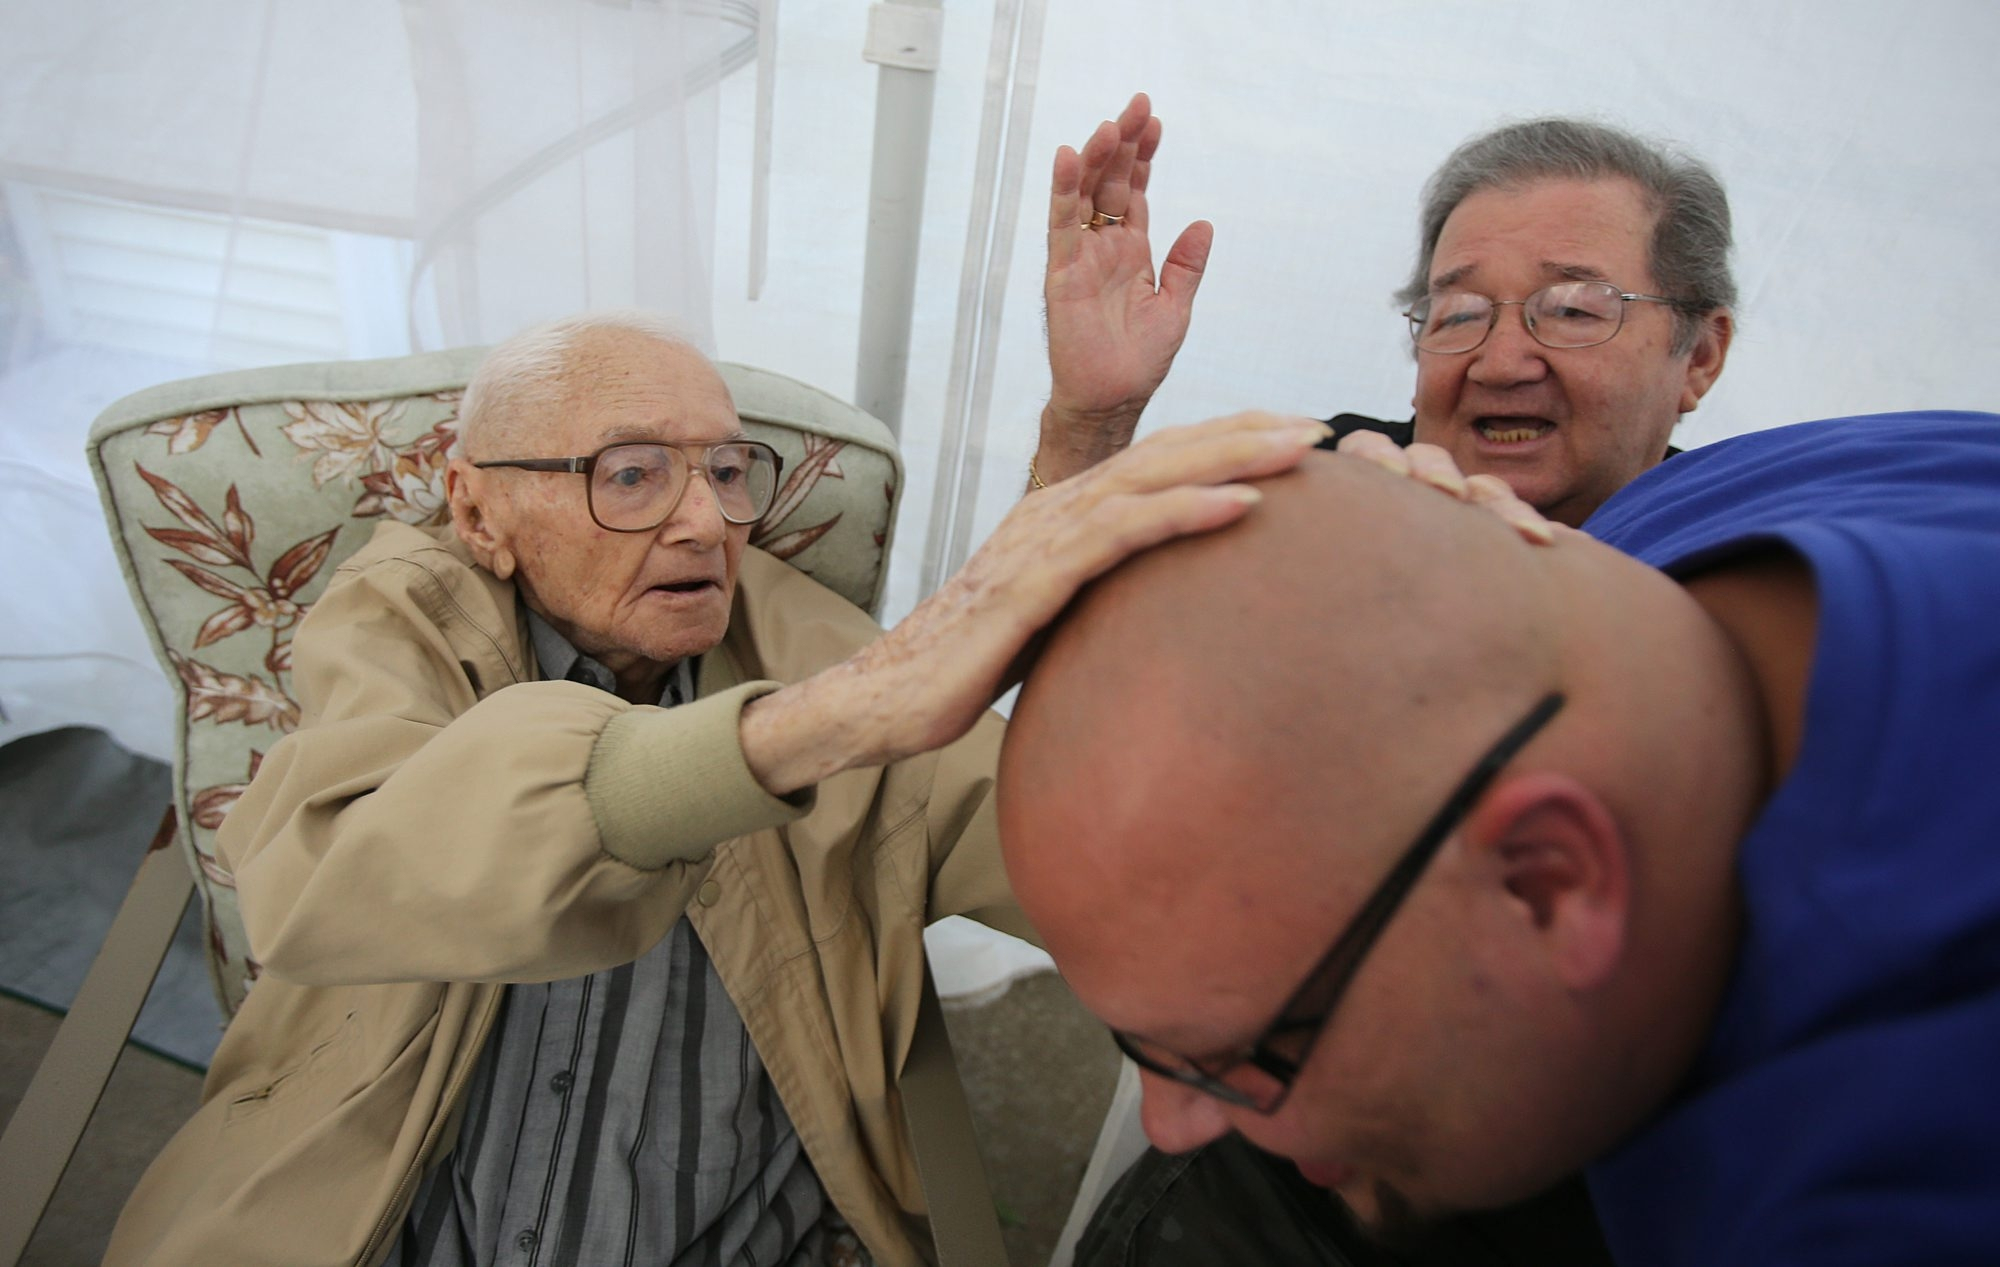 Enrique Padilla, left, rubs the head of his grandson Mike Borzillieri as his son Enrique Padilla Jr., right, looks on during his 100th birthday celebration at his home in South Buffalo on Thursday.